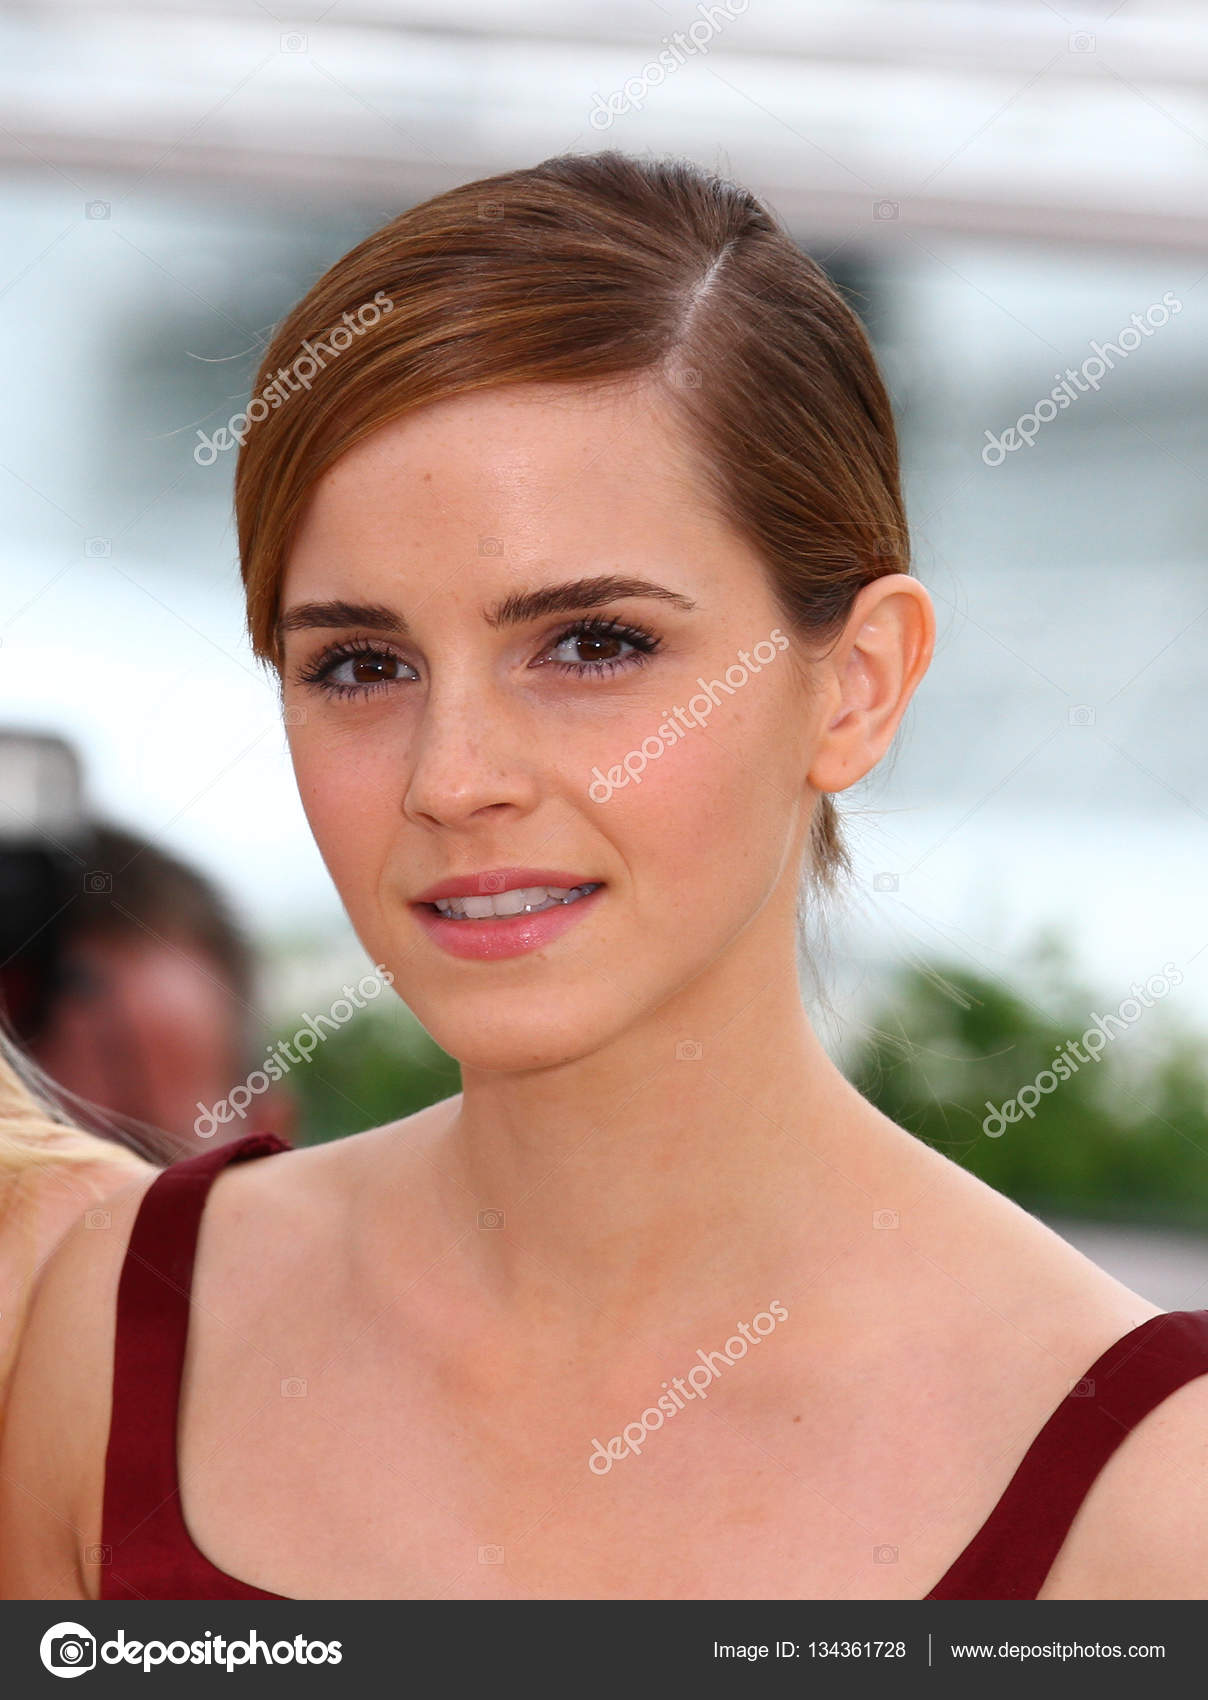 actress emma watson – stock editorial photo © twocoms #134361728